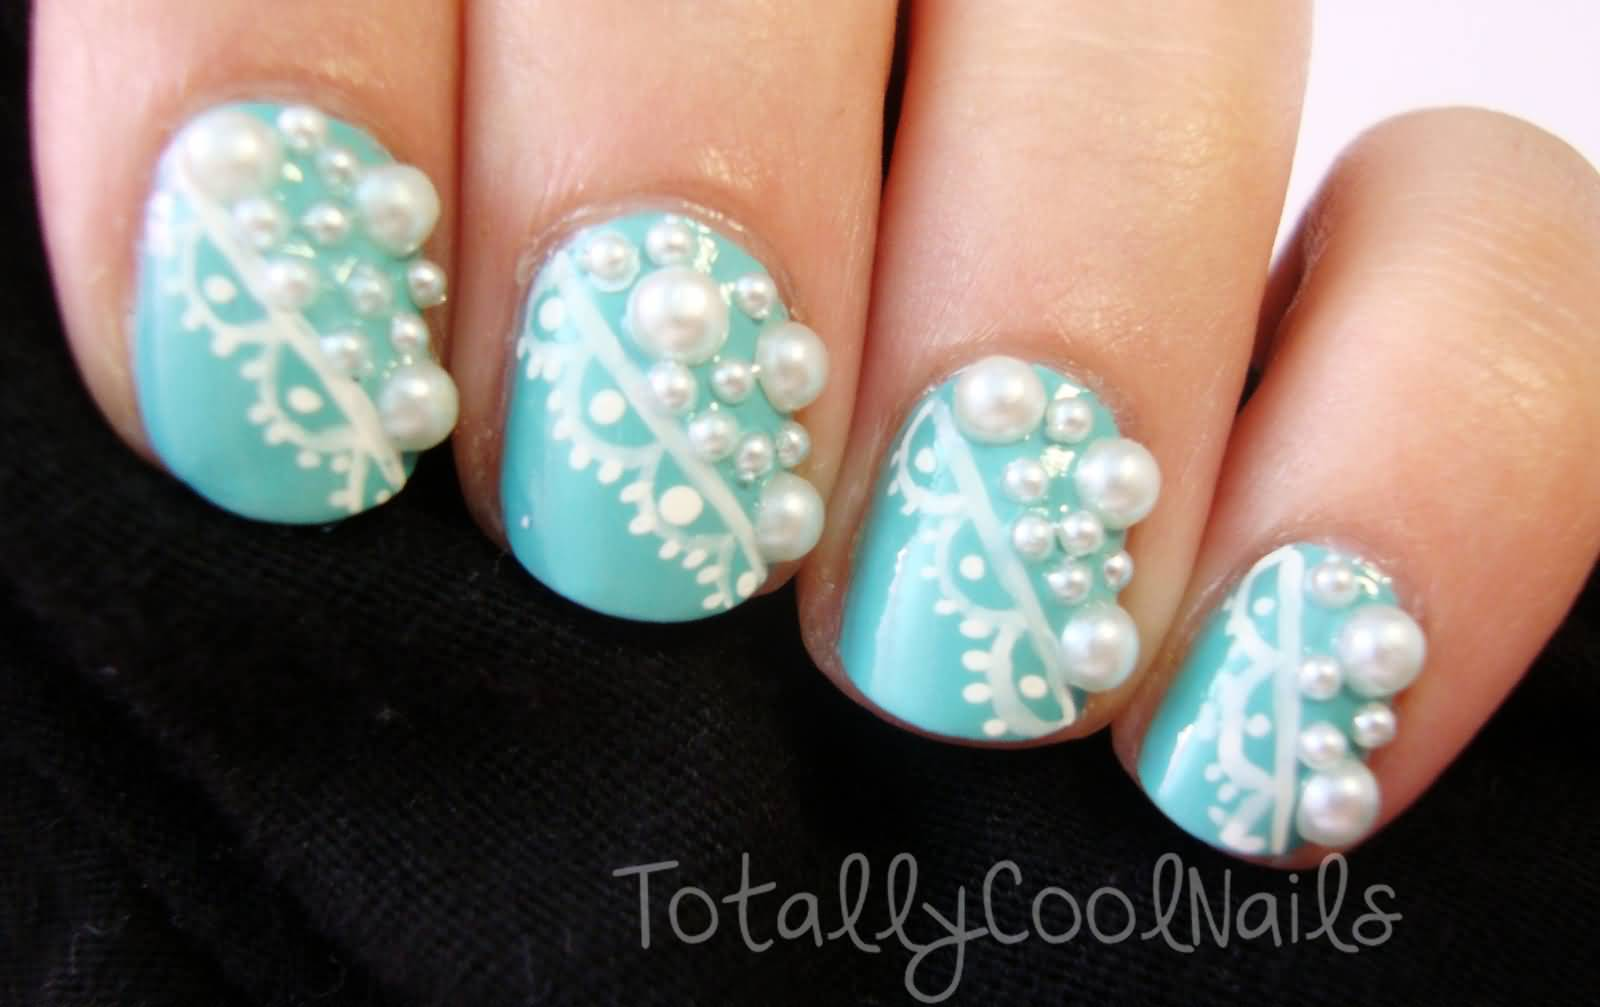 Blue Nails With White Lace And Pearls Design Nail Art With Tutorial